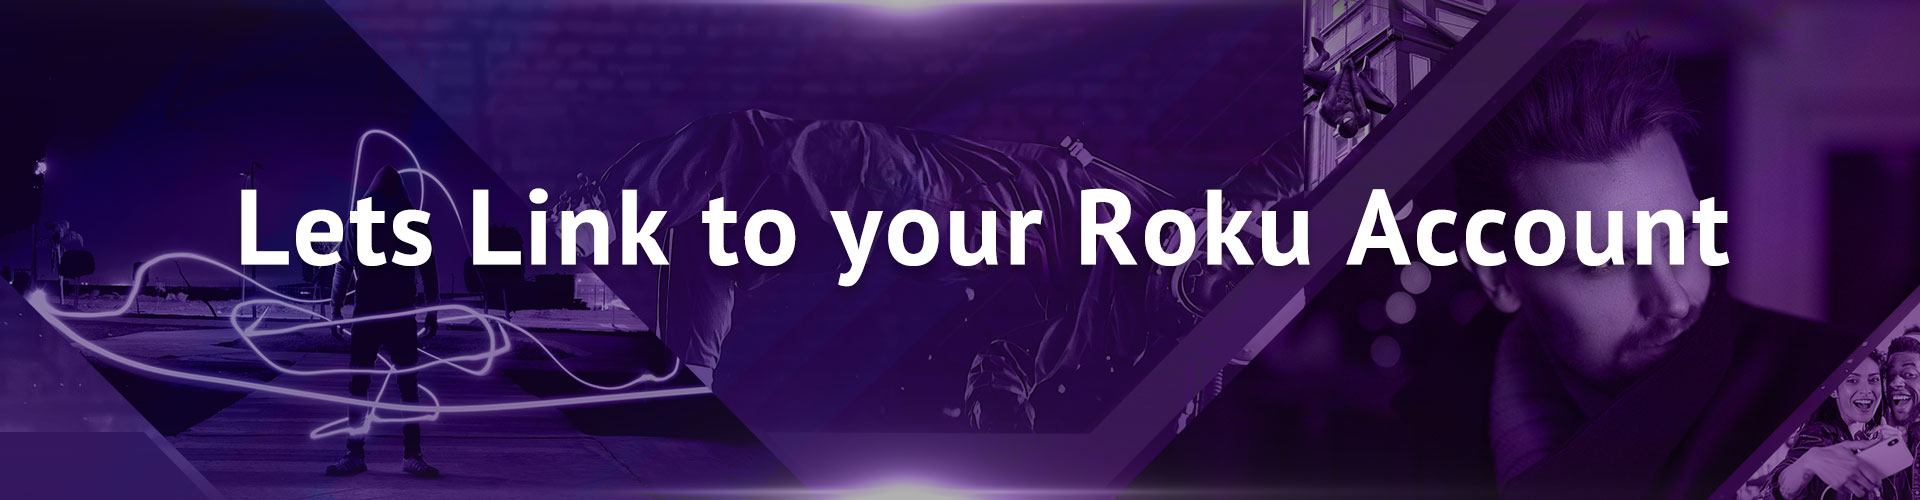 Why to Choose Roku.com Linking Streaming Player? image 1